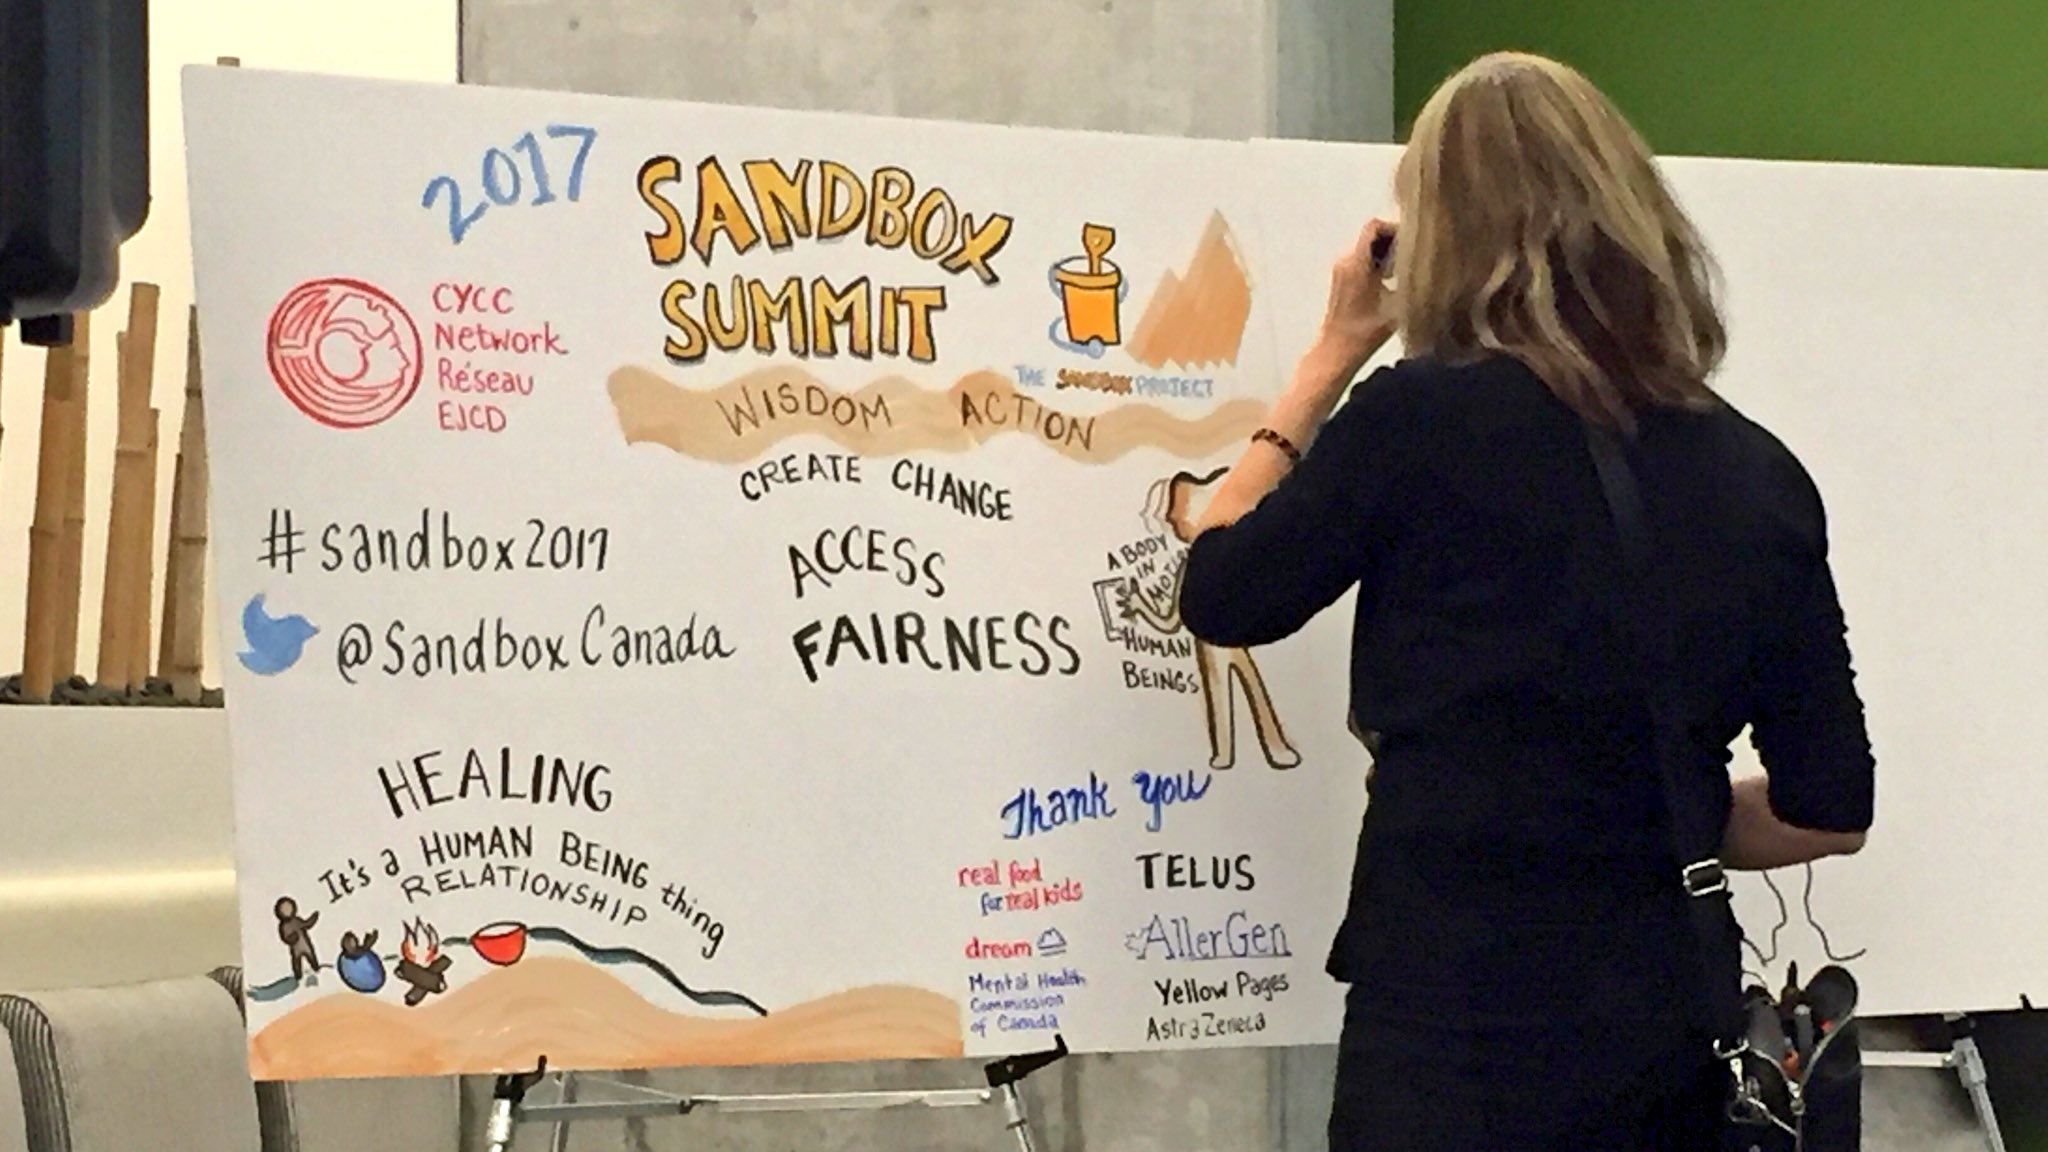 Live illustrator capturing events here at #Sandbox2017 - so cool! https://t.co/4noOsfRC7P